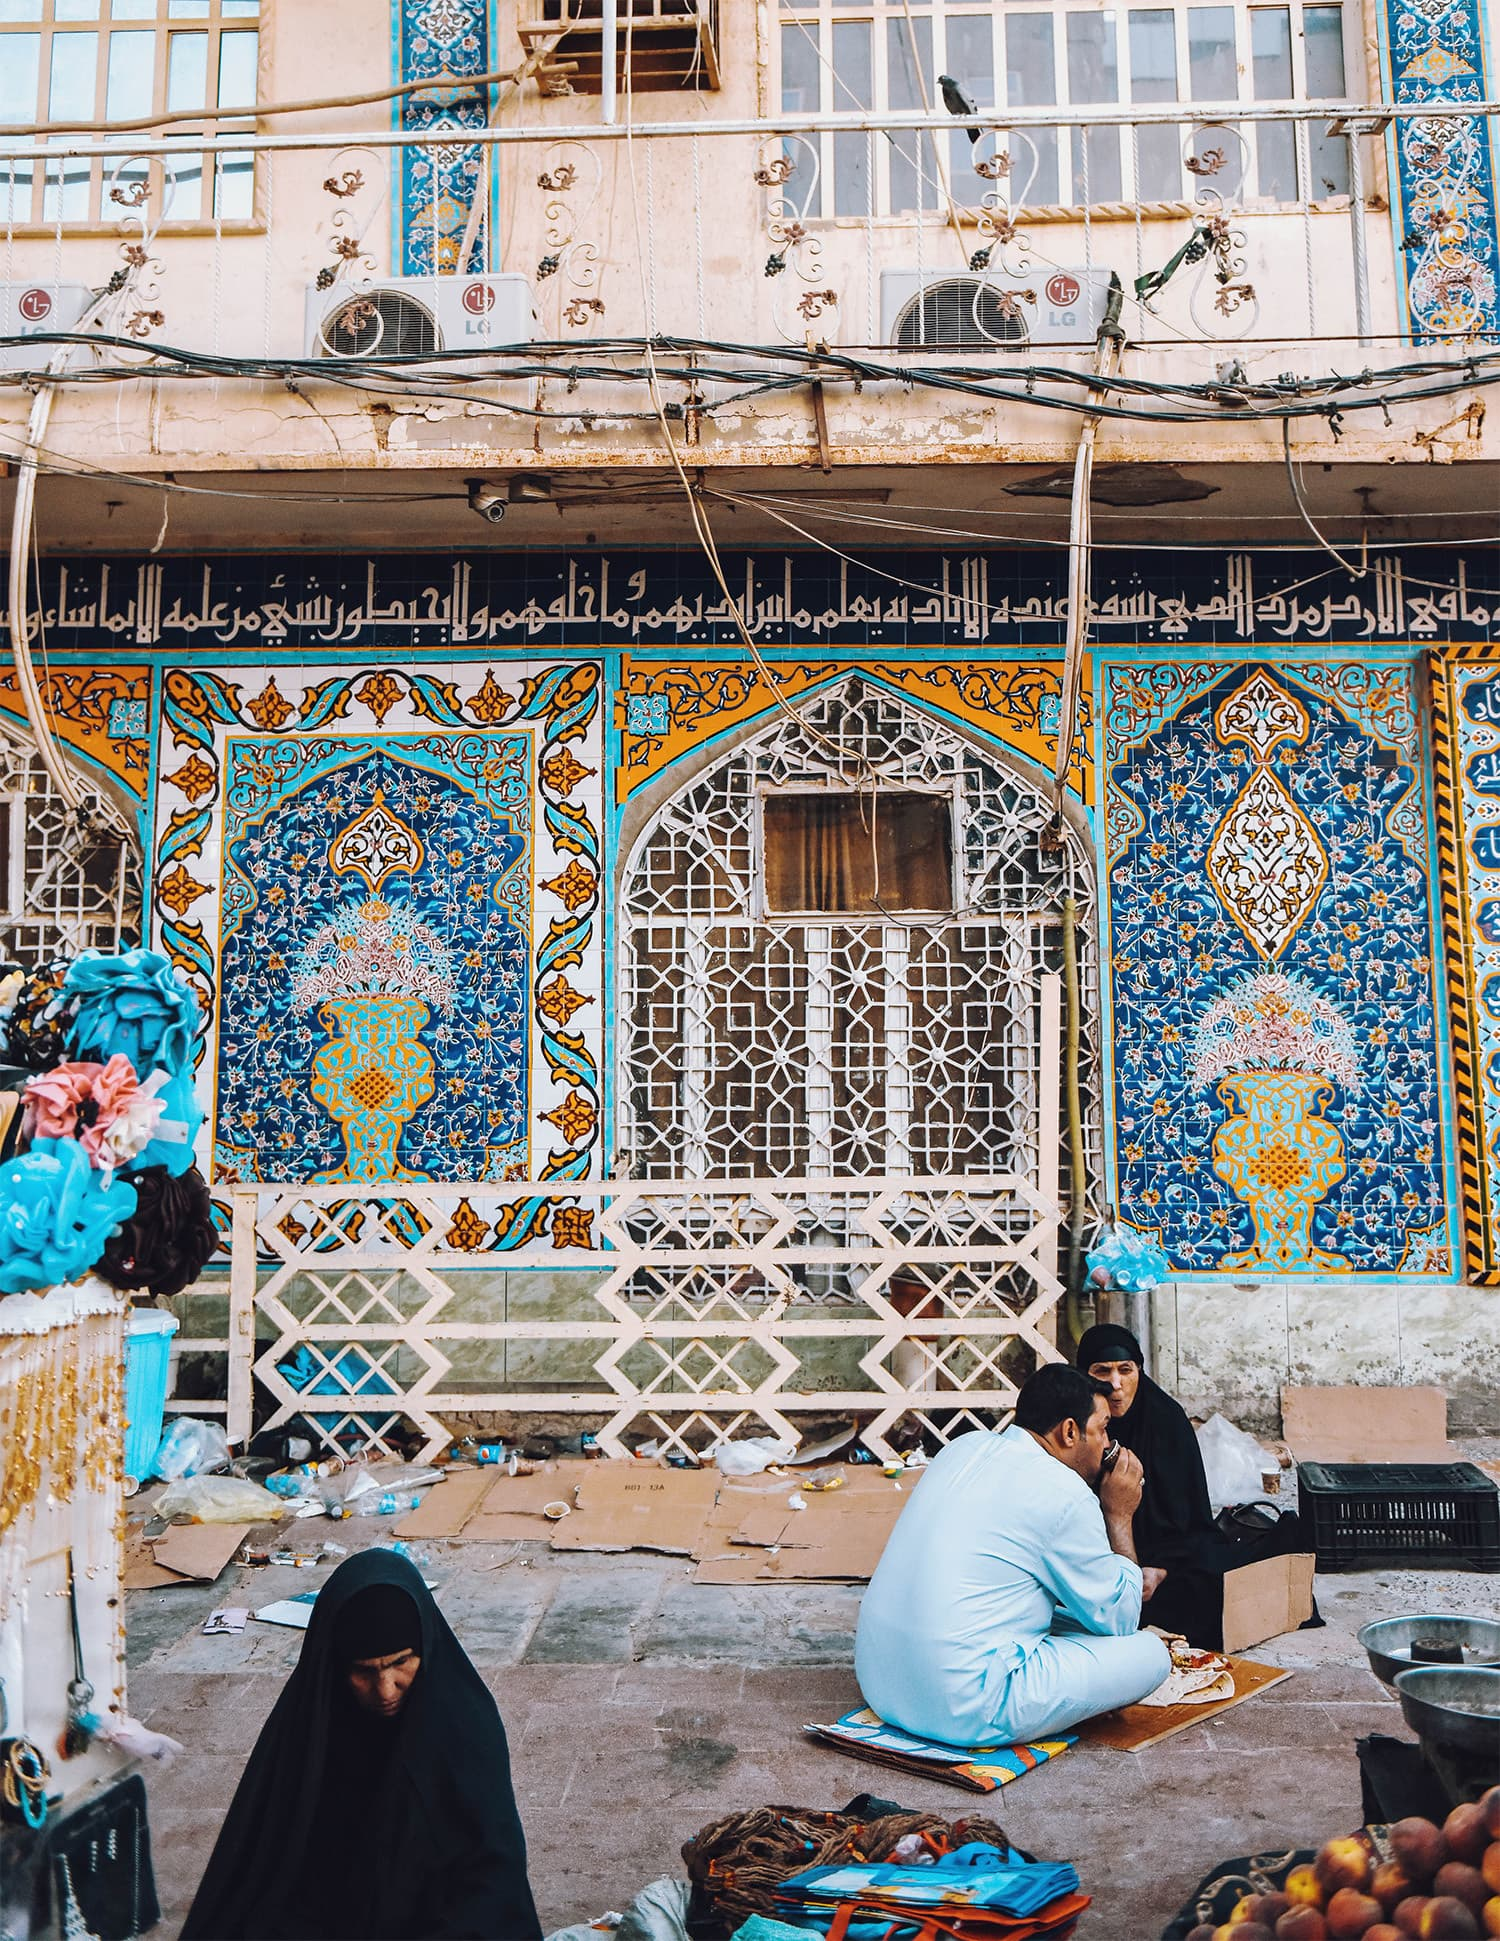 The Islamic love of floral design, rendered in tiles is beautifully evident in local mosques and Iraqi architecture.